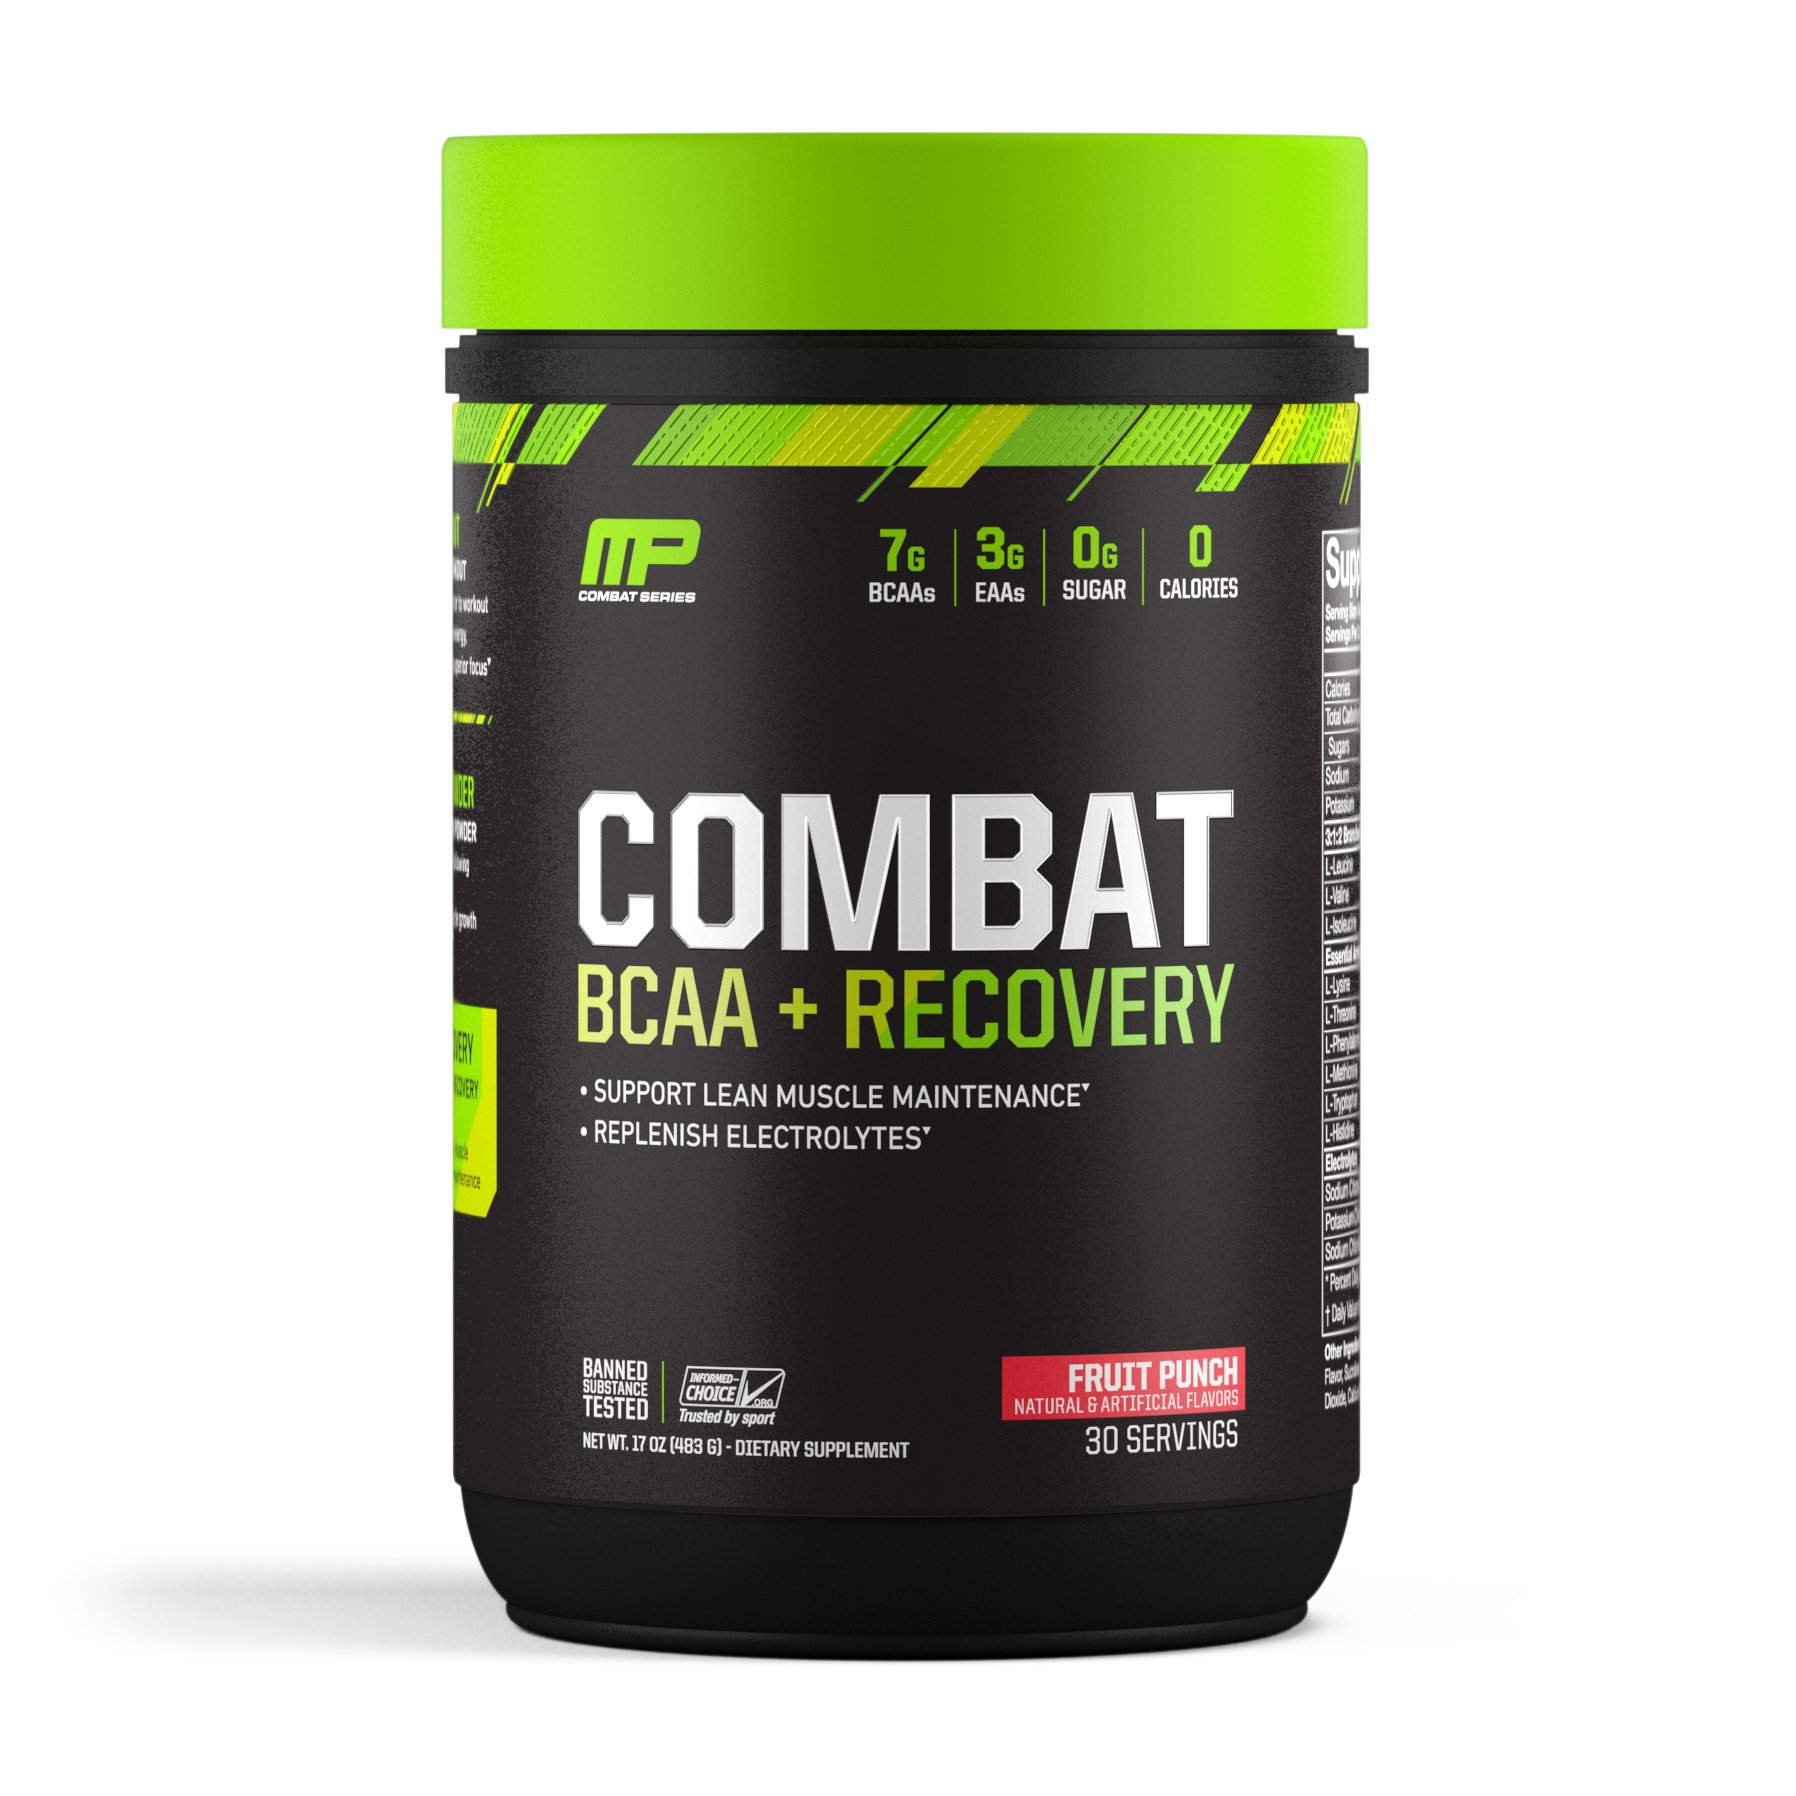 MusclePharm Combat BCAA + Recovery – 10 G of BCAAs and EAAs to Support Recovery, Muscle Development, Replenish Electrolytes, and Support Lean Muscle Maintenance, Fruit Punch, 30 Servings